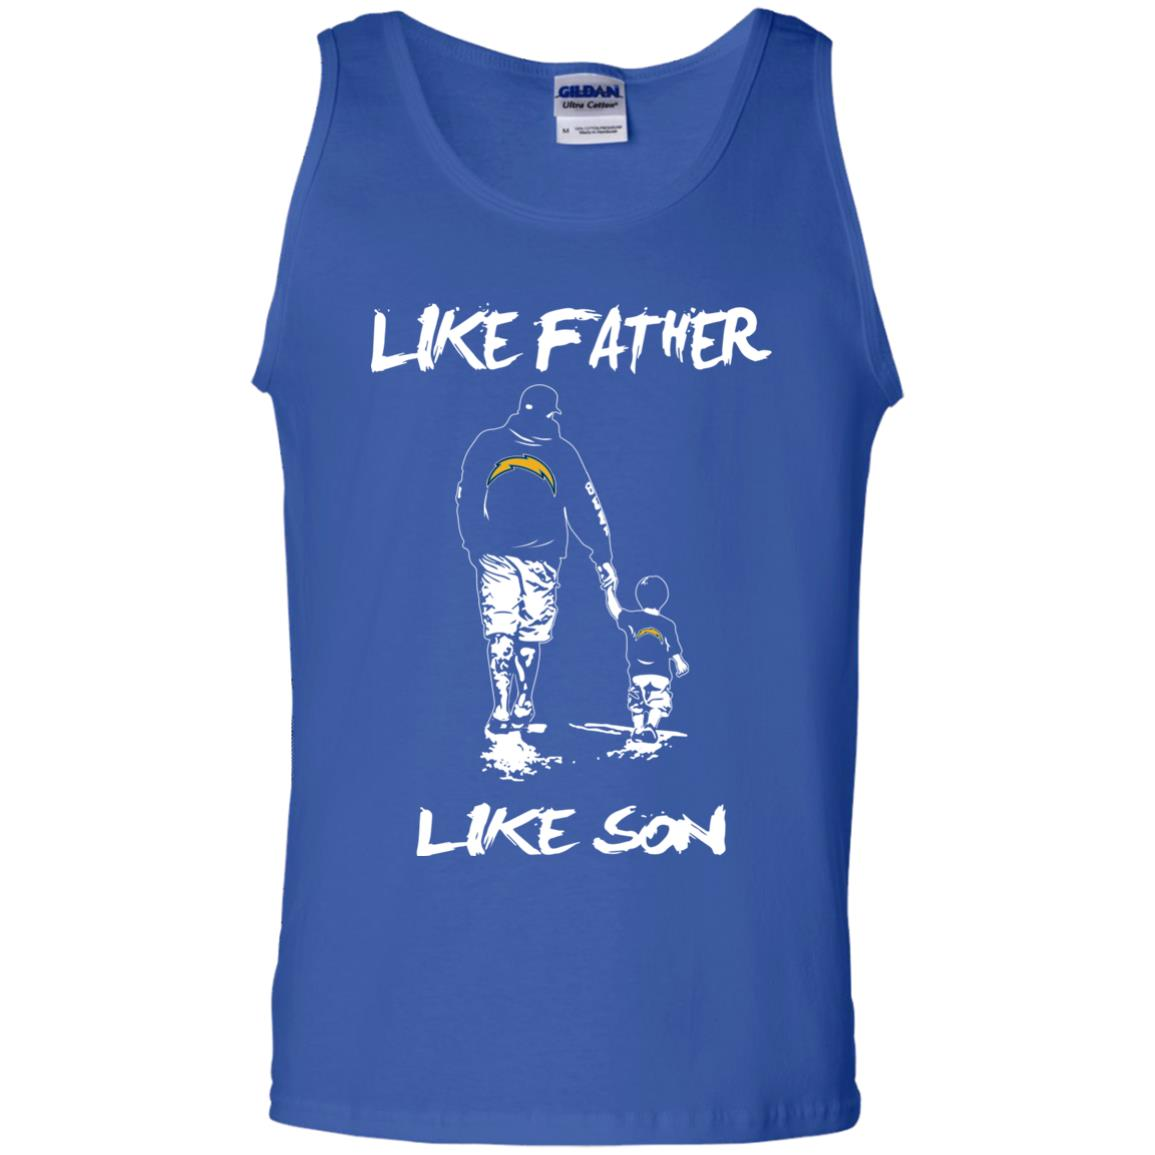 Like Father Like Son Los Angeles Chargers T Shirt